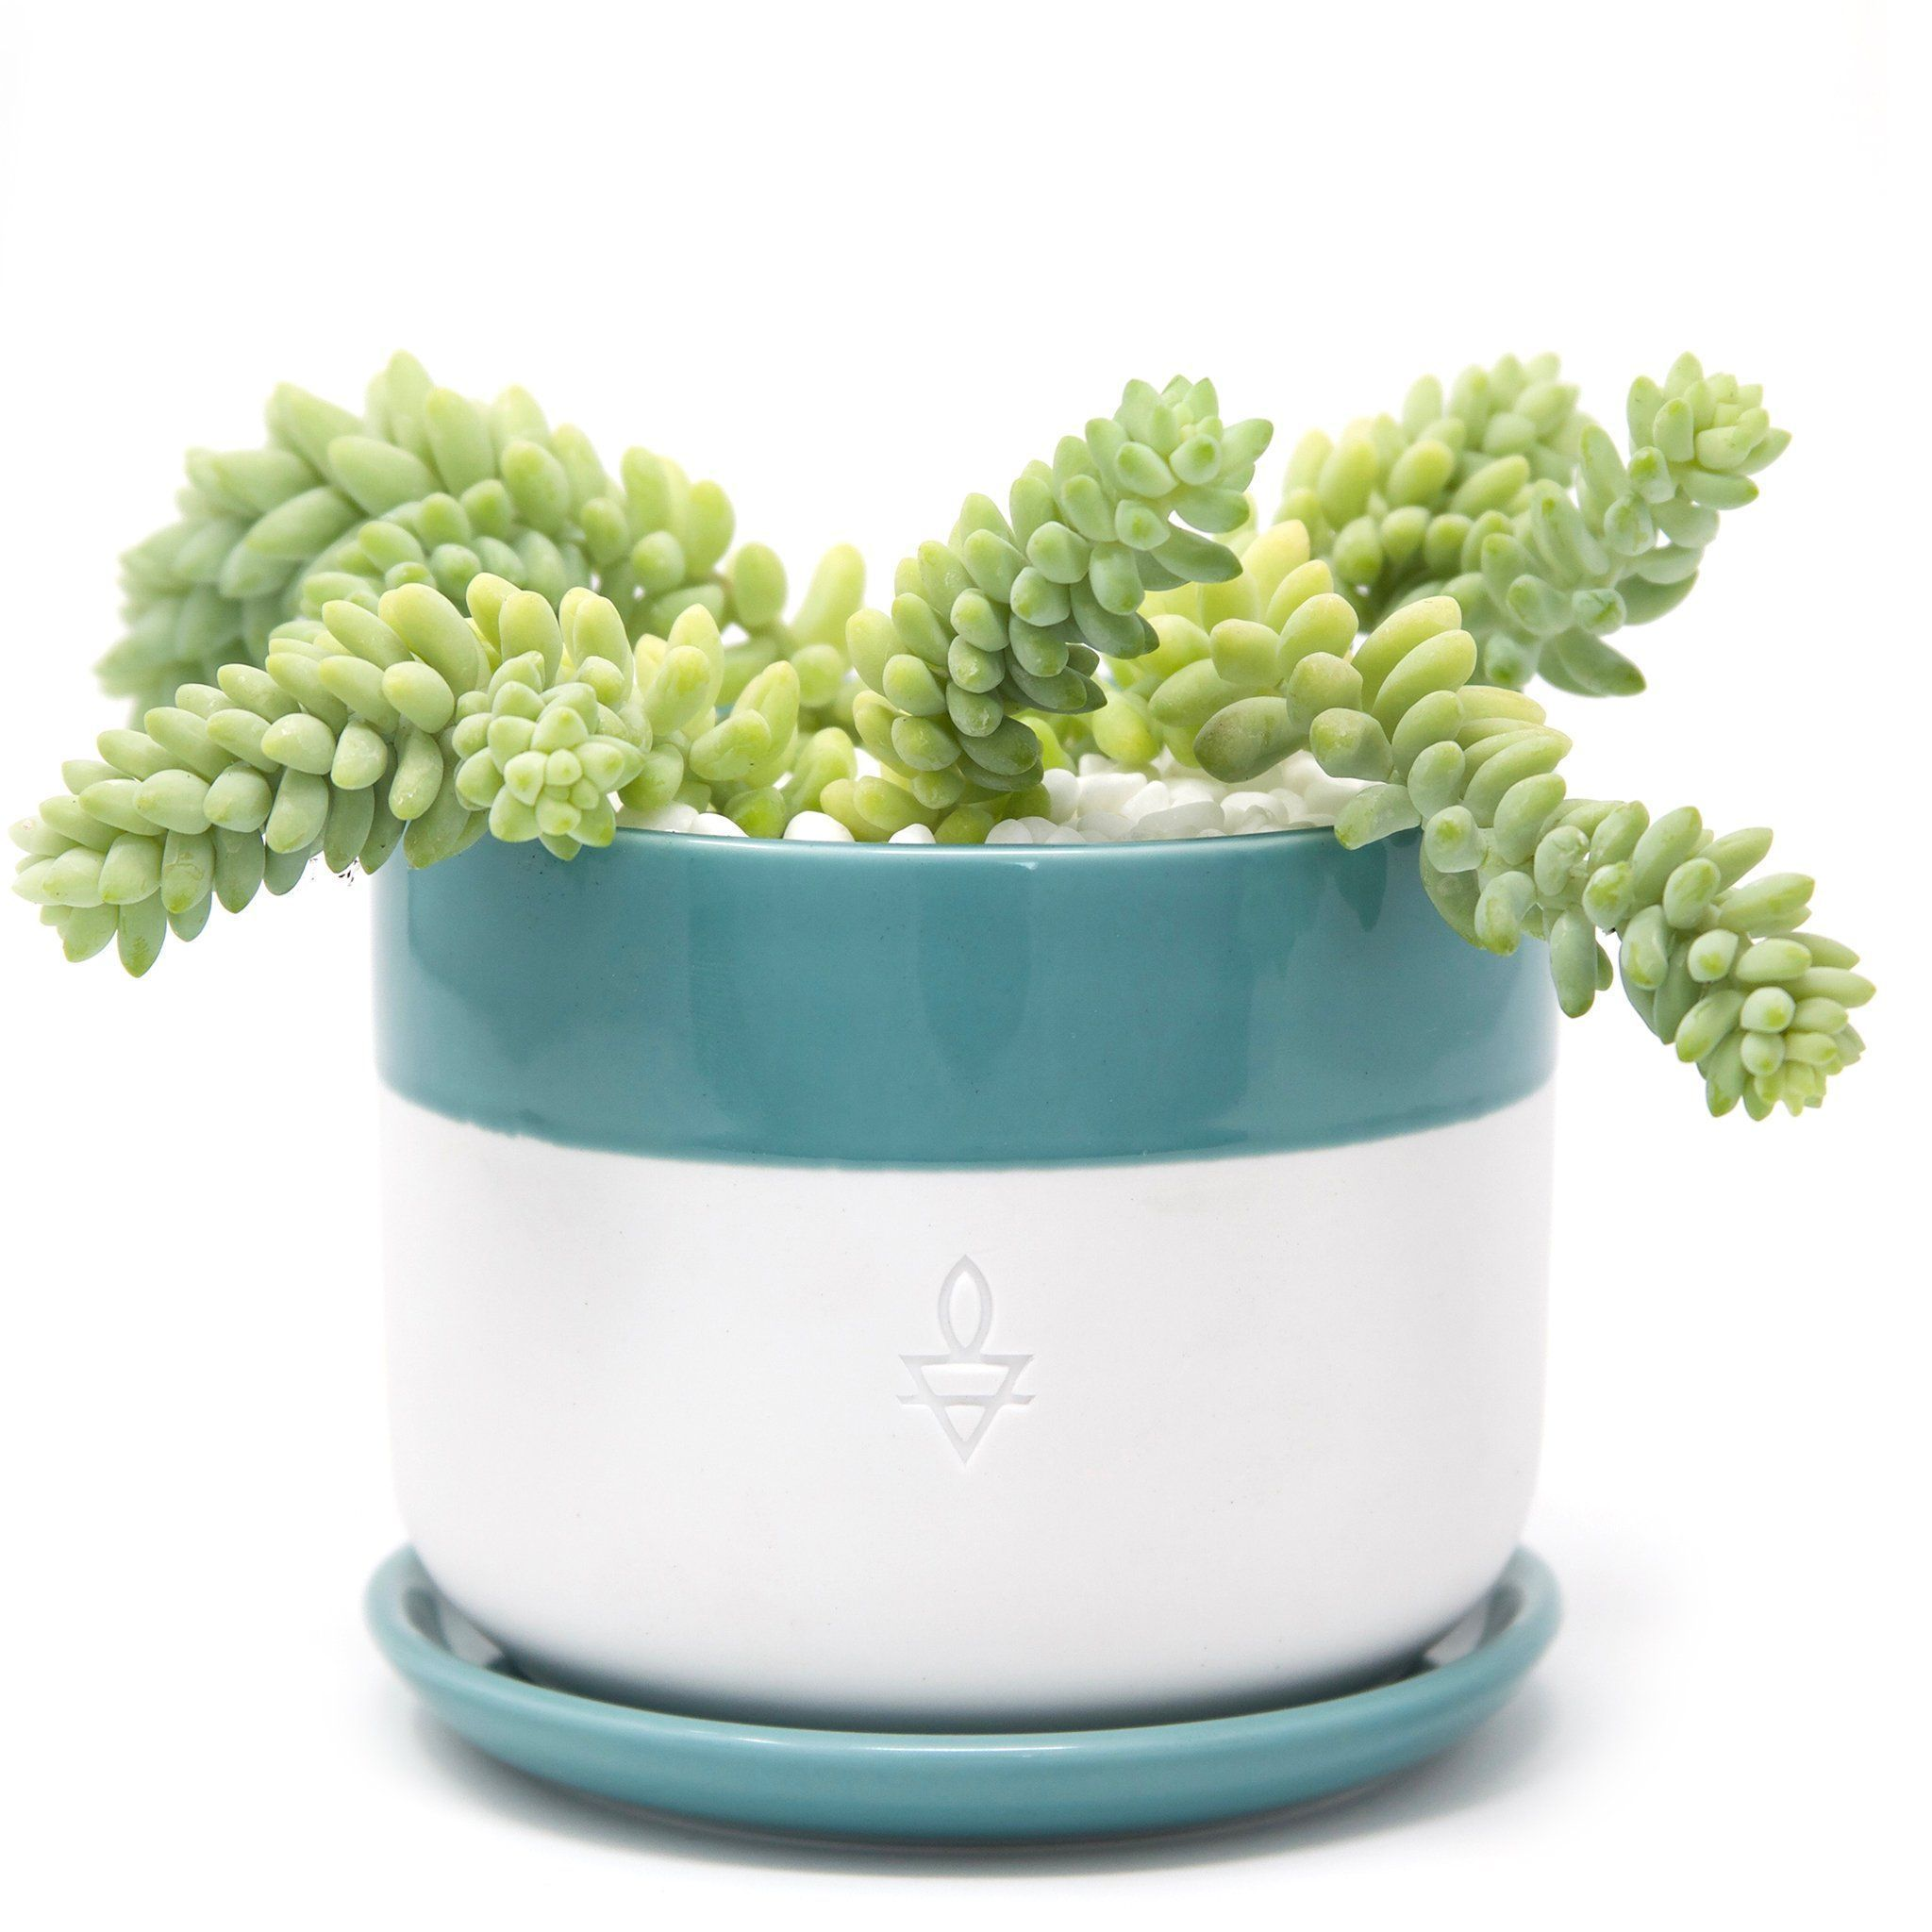 These Are The Best Places To Plants Online Refinery29 Https Www